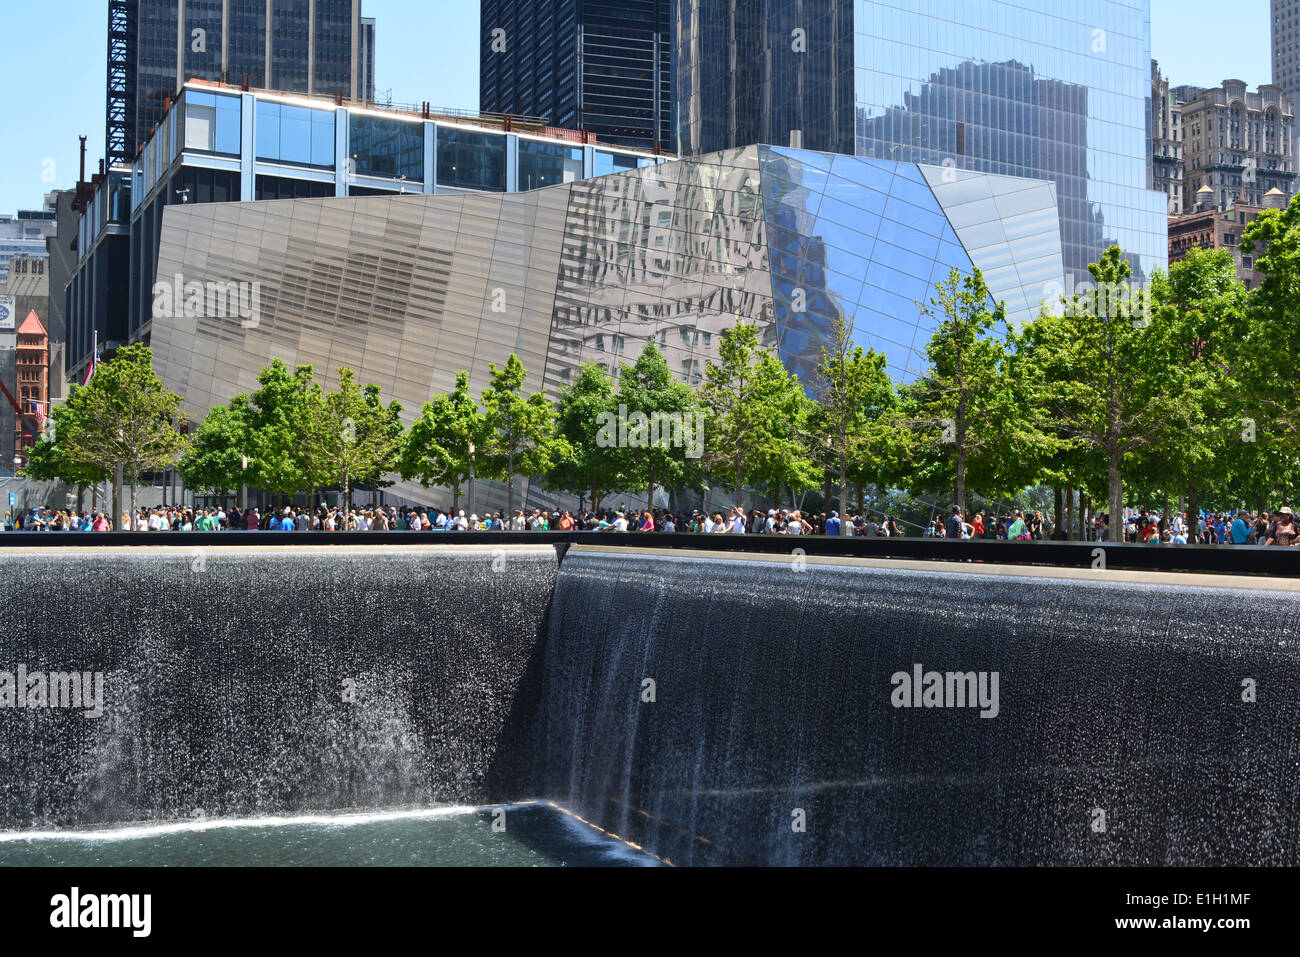 National 9/11 Memorial and Museum at Ground Zero in Lower Manhattan. - Stock Image